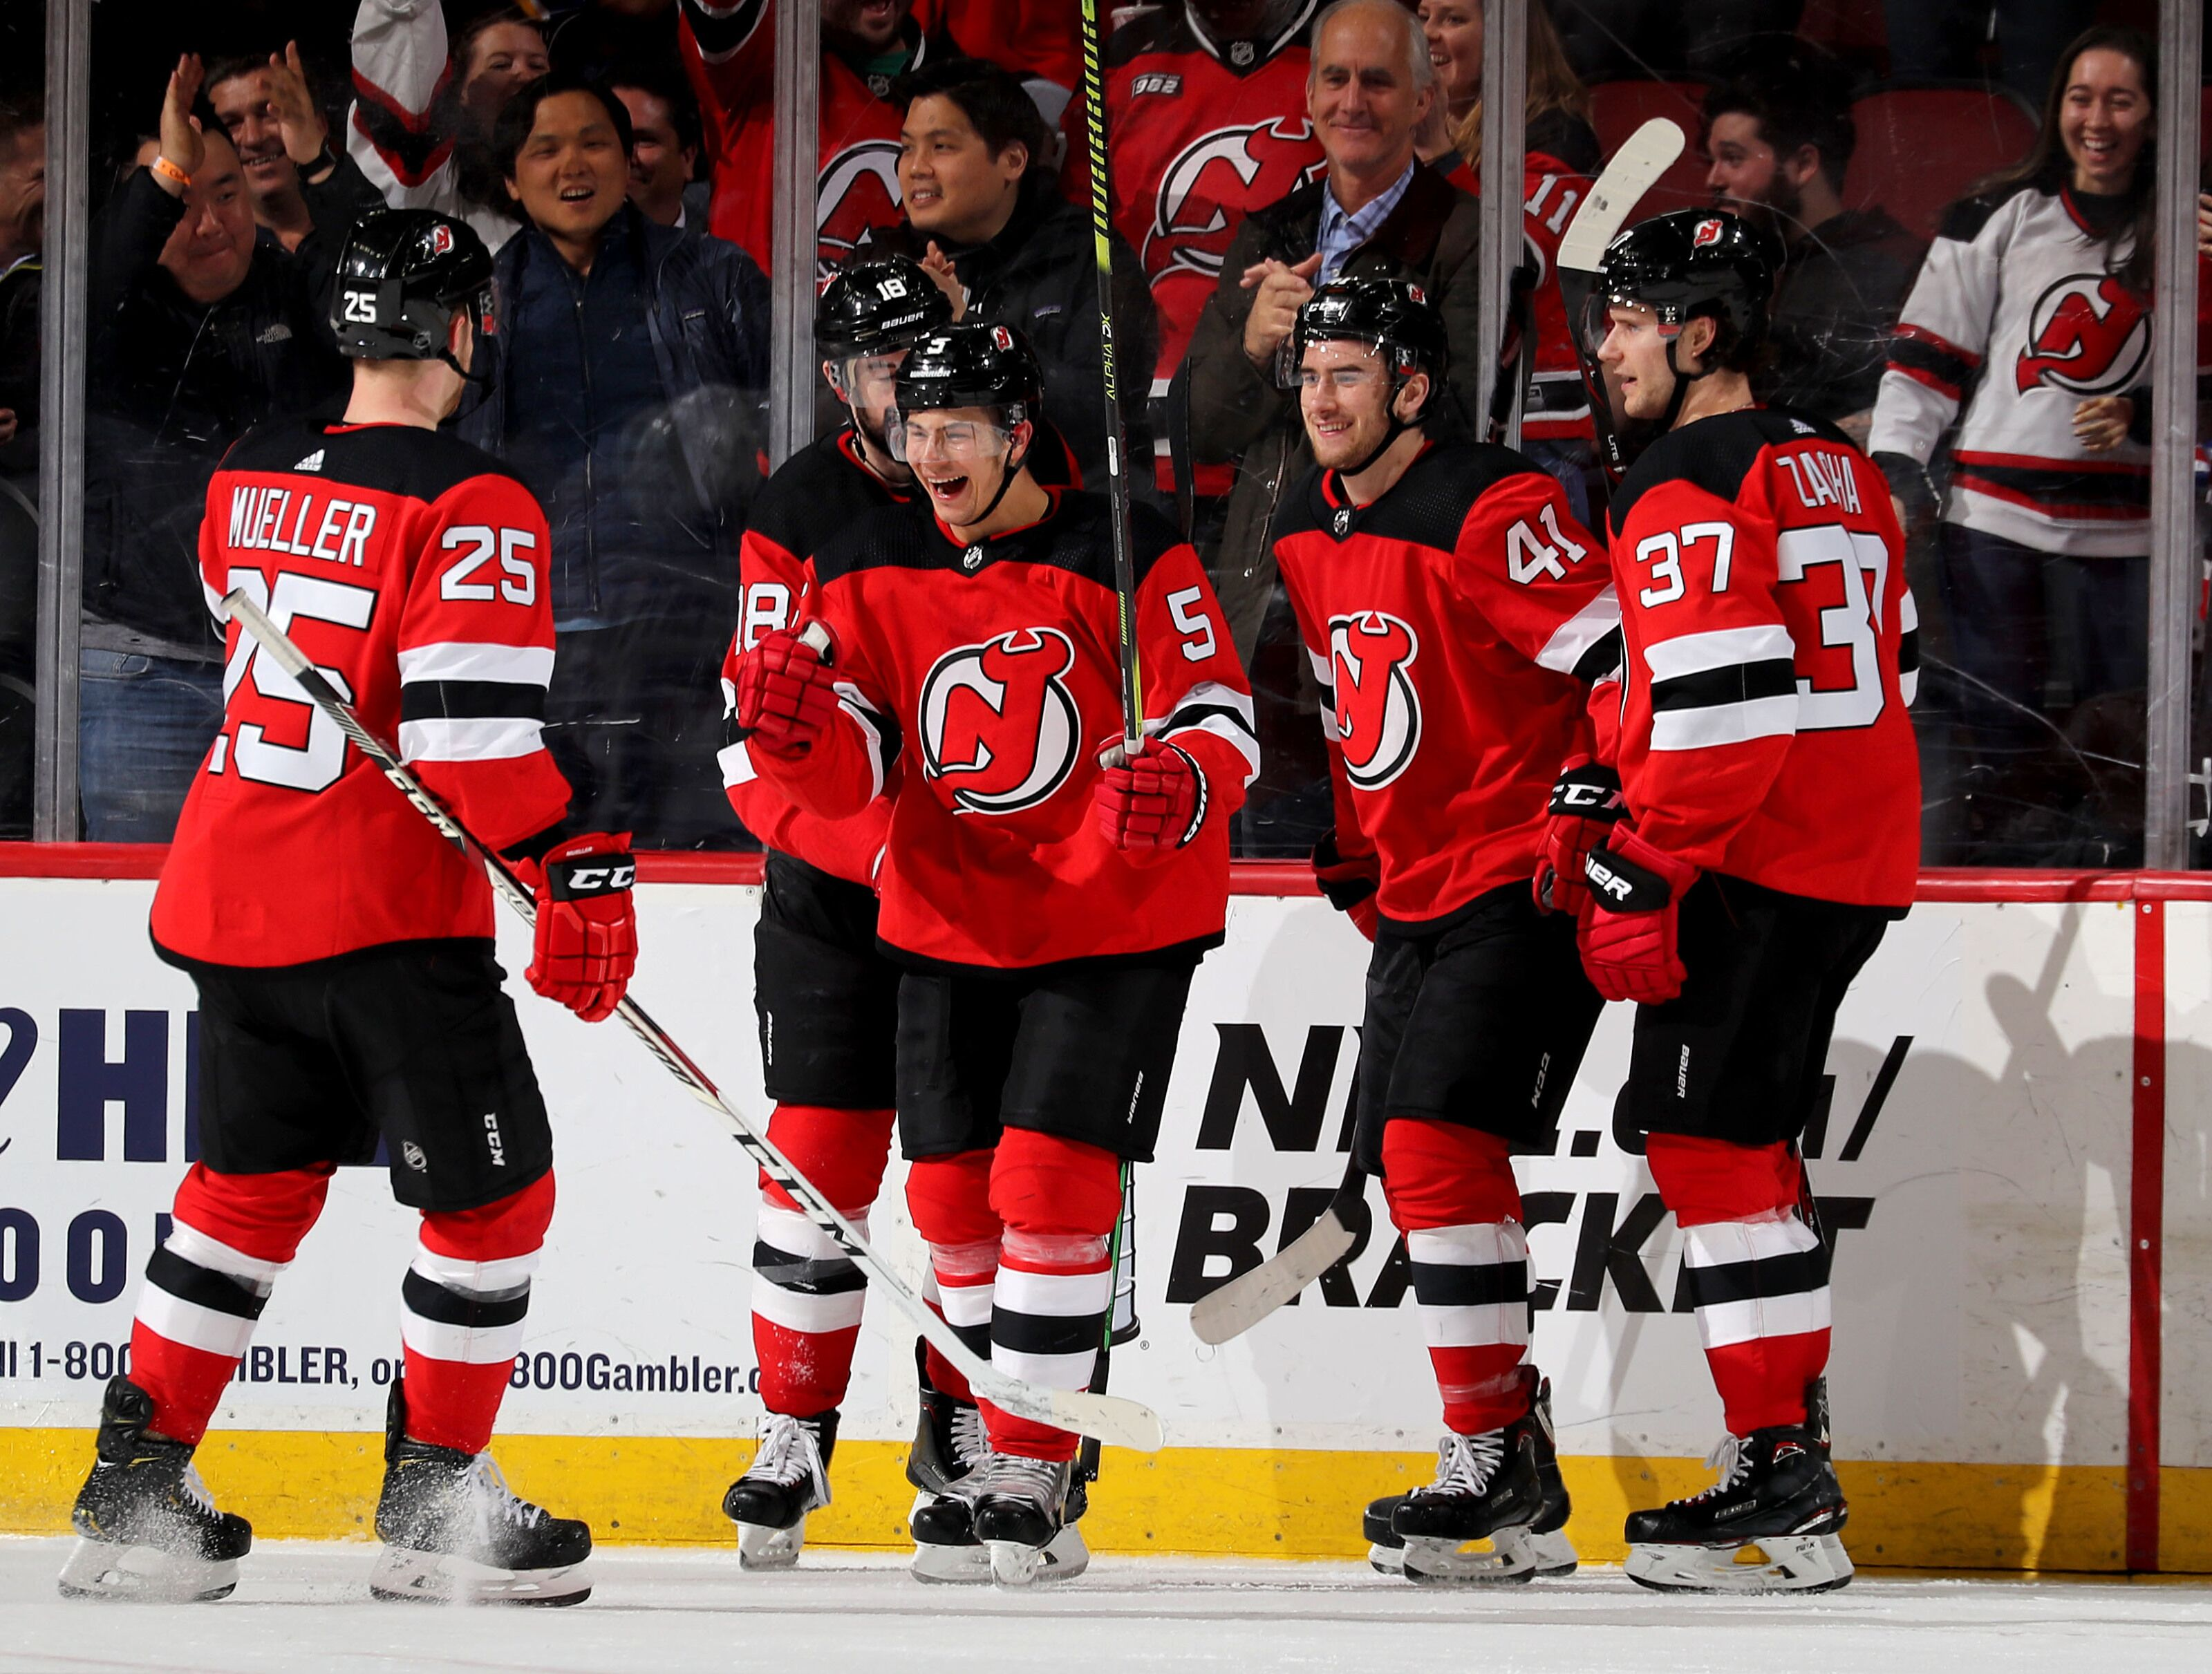 fe516772 New Jersey Devils: Evaluating Futures of Pavel Zacha, Michael McLeod